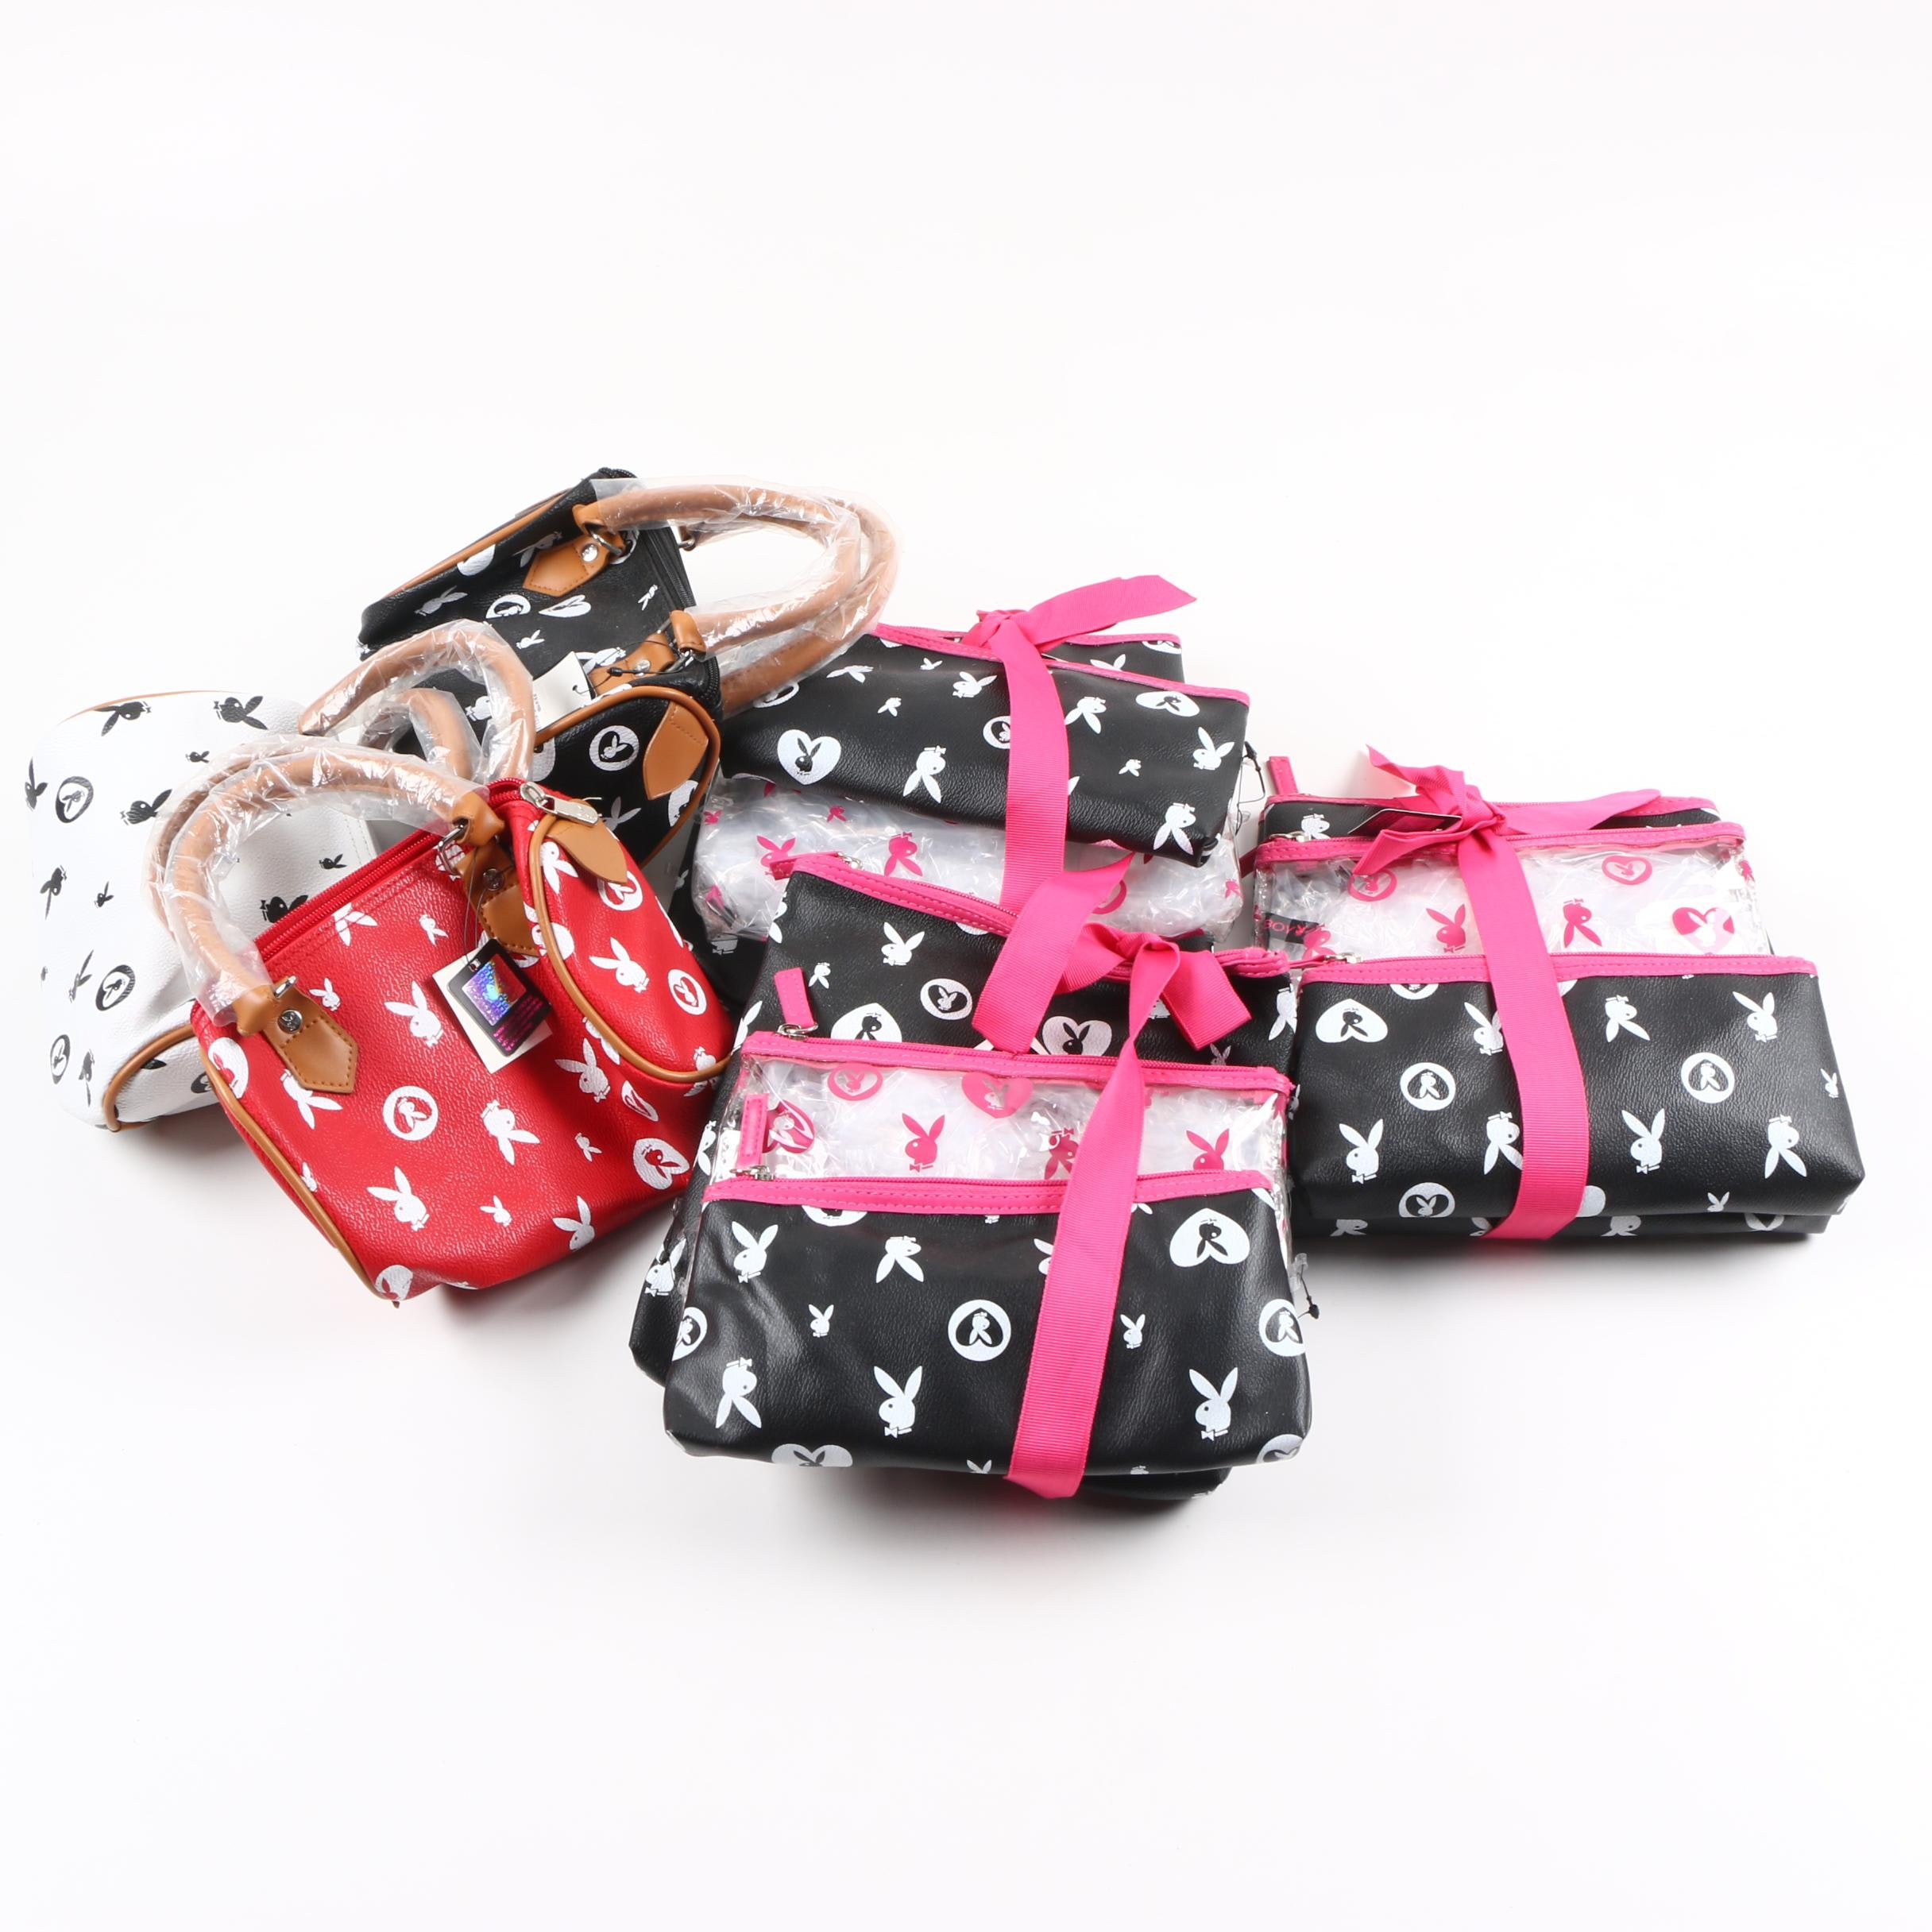 Playboy Bunny Handbags and Accessories Sets